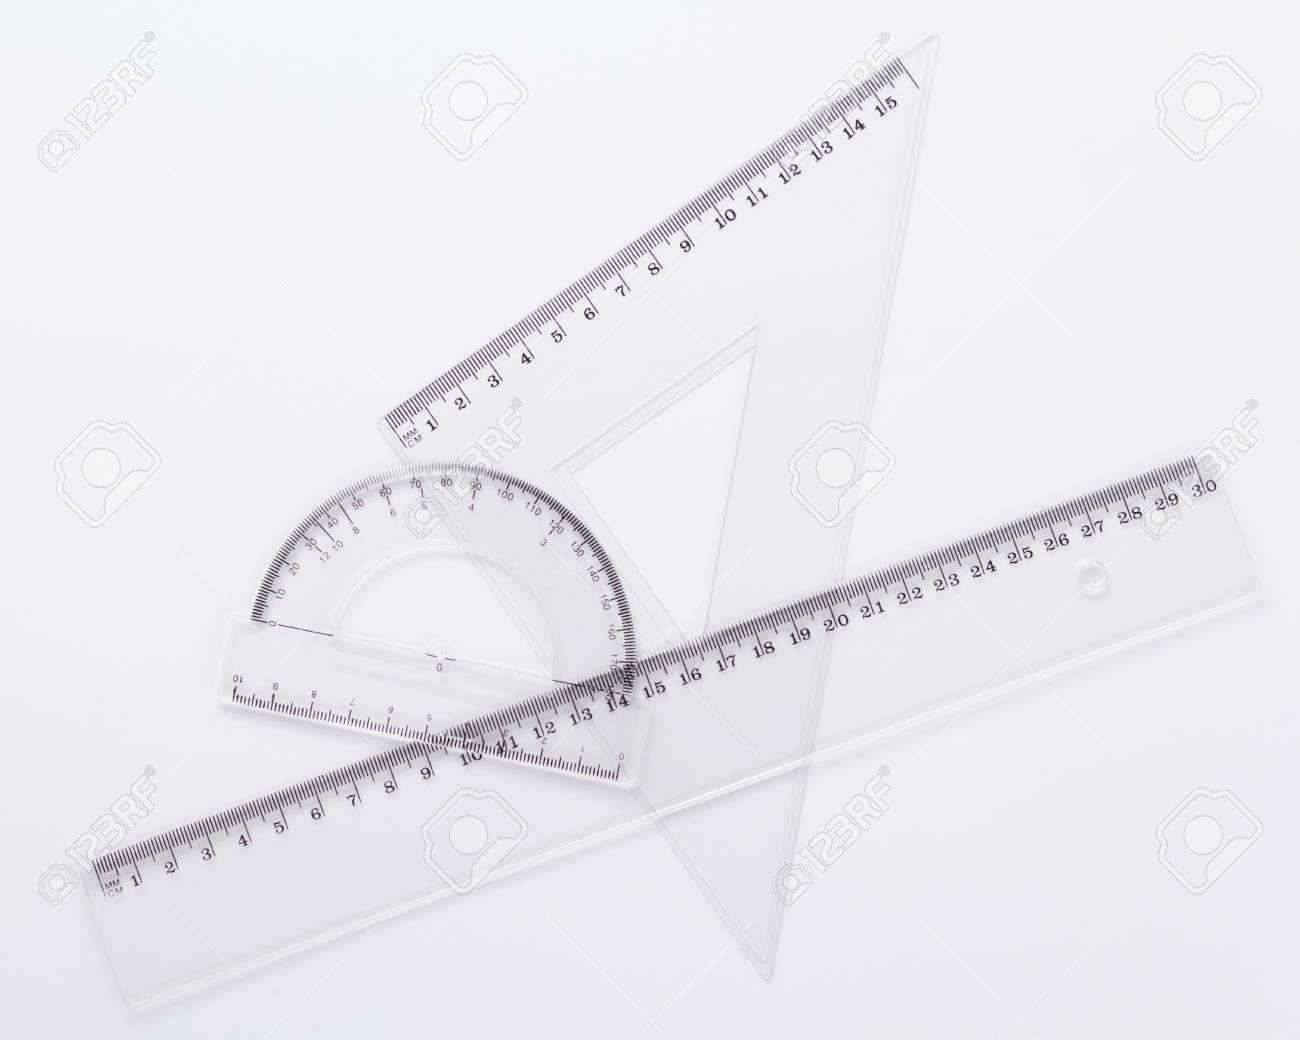 ruler metric at white background, top view - 122174890